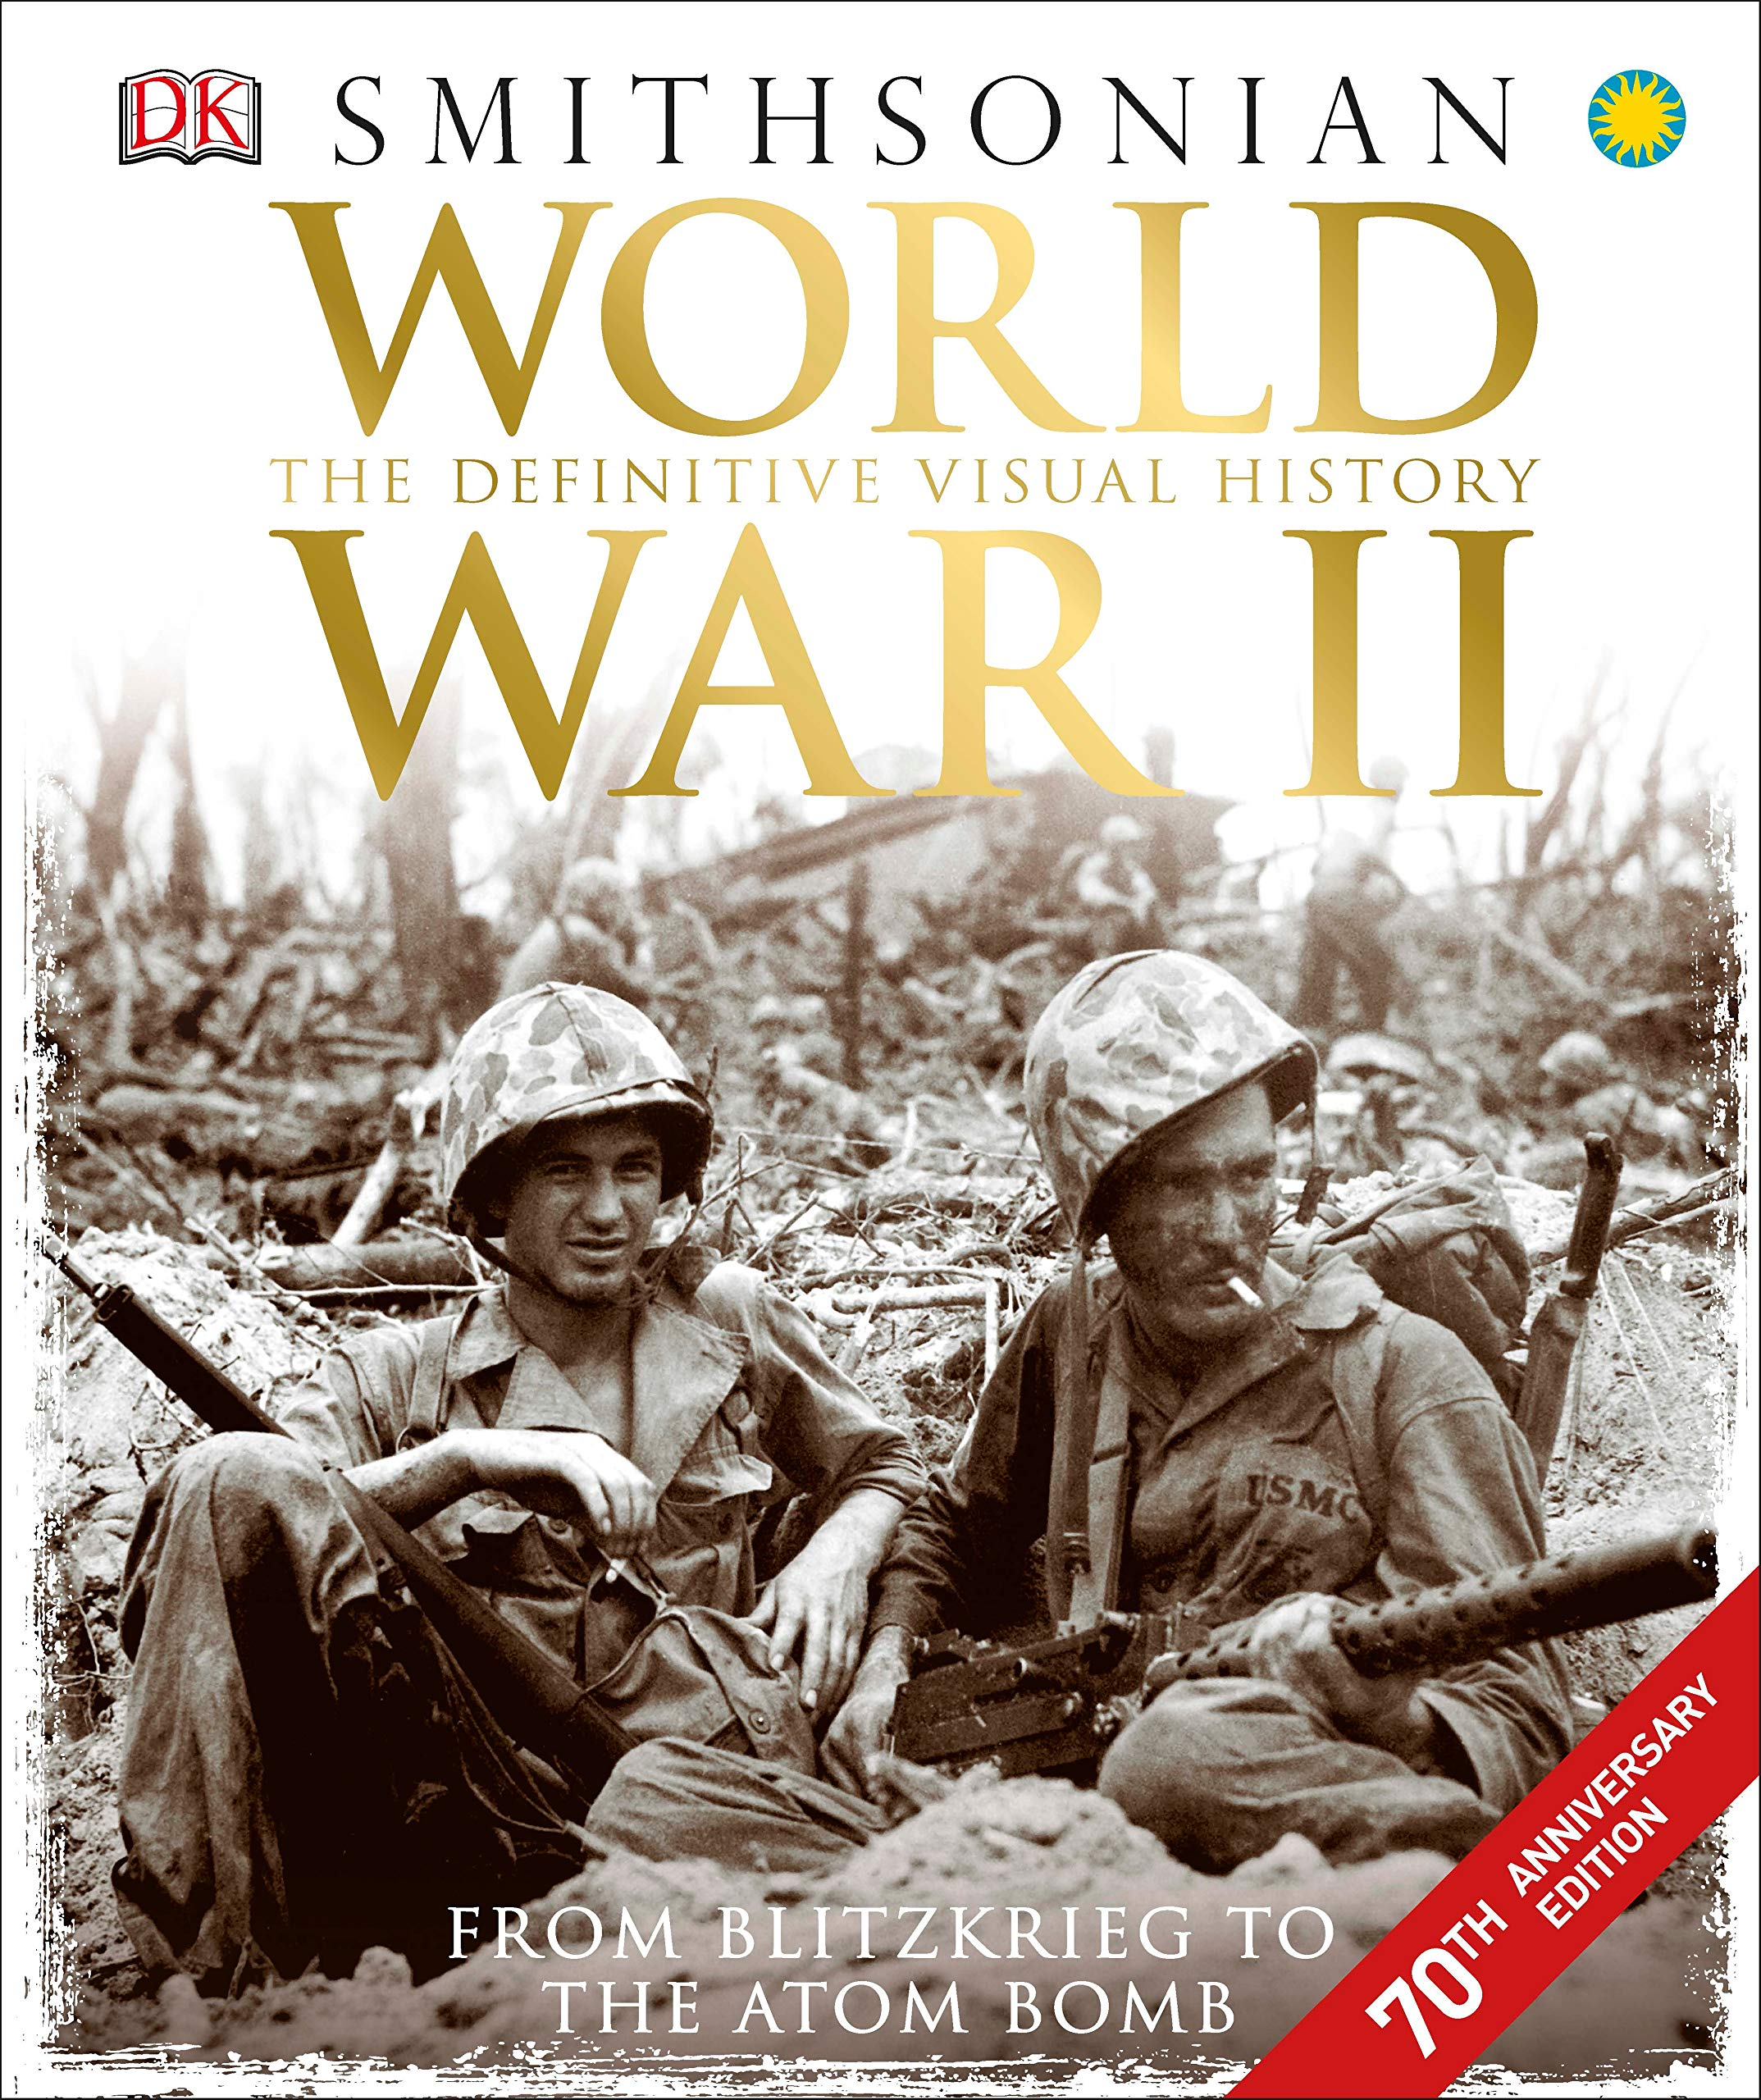 World War II: The Definitive Visual History from Blitzkrieg to the Atom Bomb